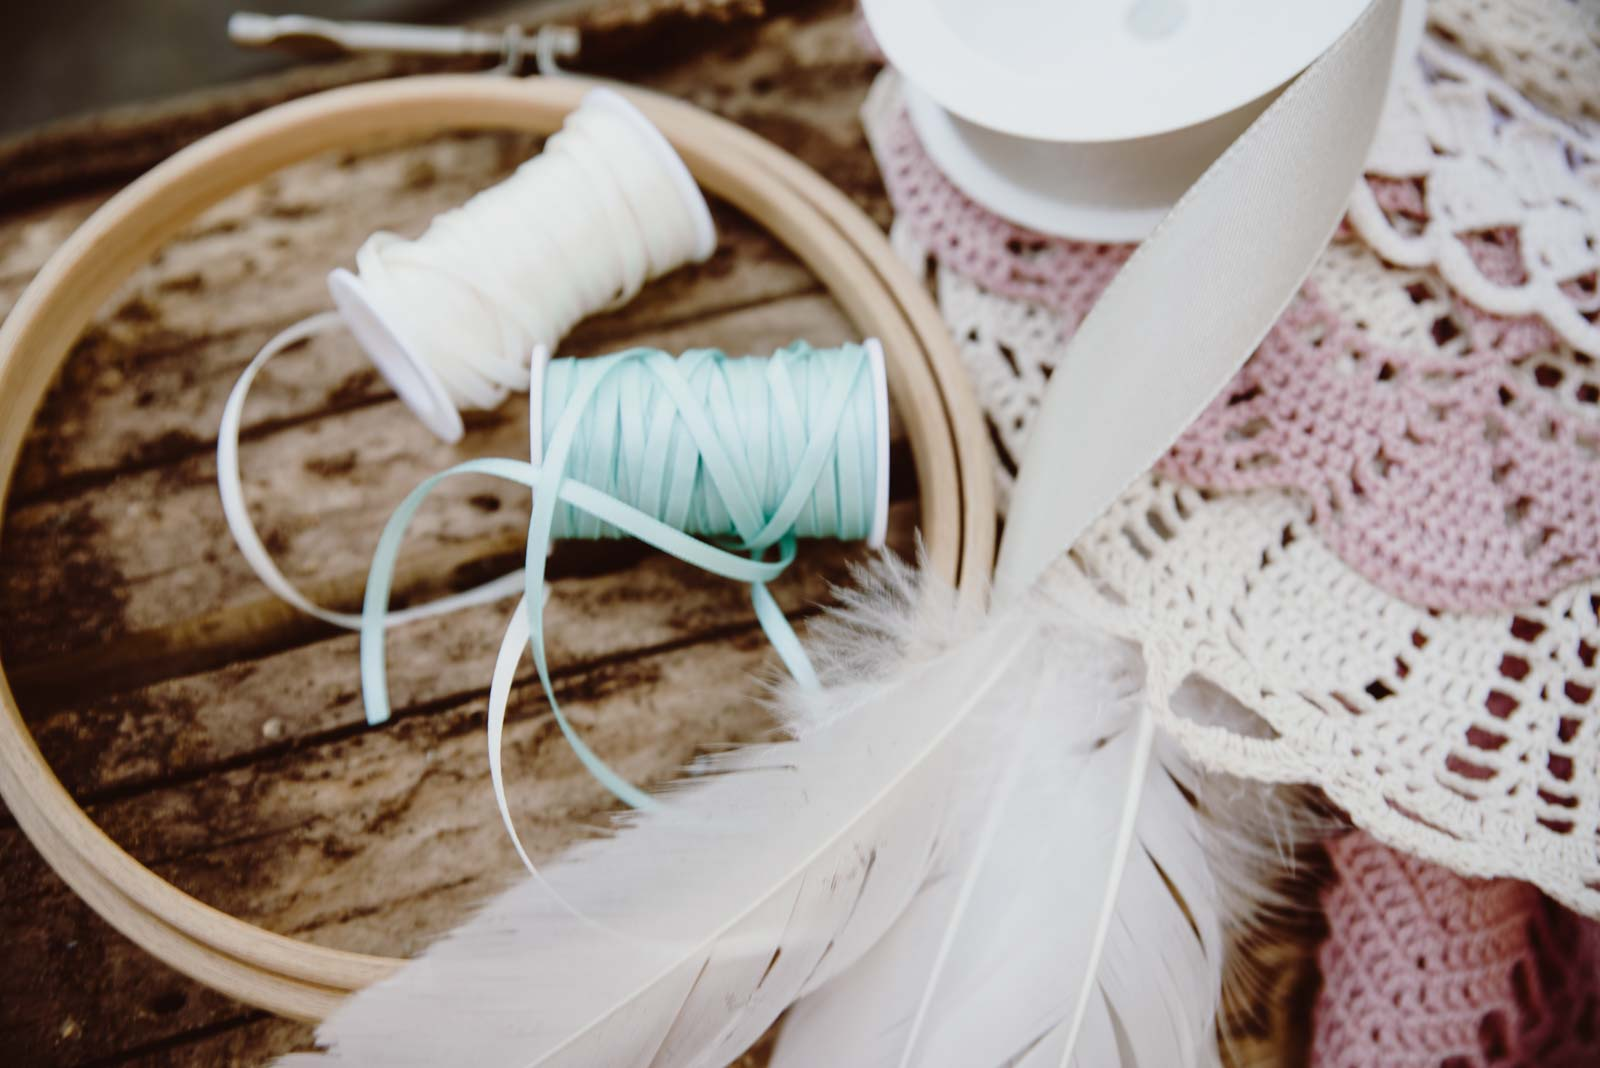 DIY-Dreamcatcher-Boho-Wedding-Dekoration-Traumfaenger-Hochzeitsdekoration-32